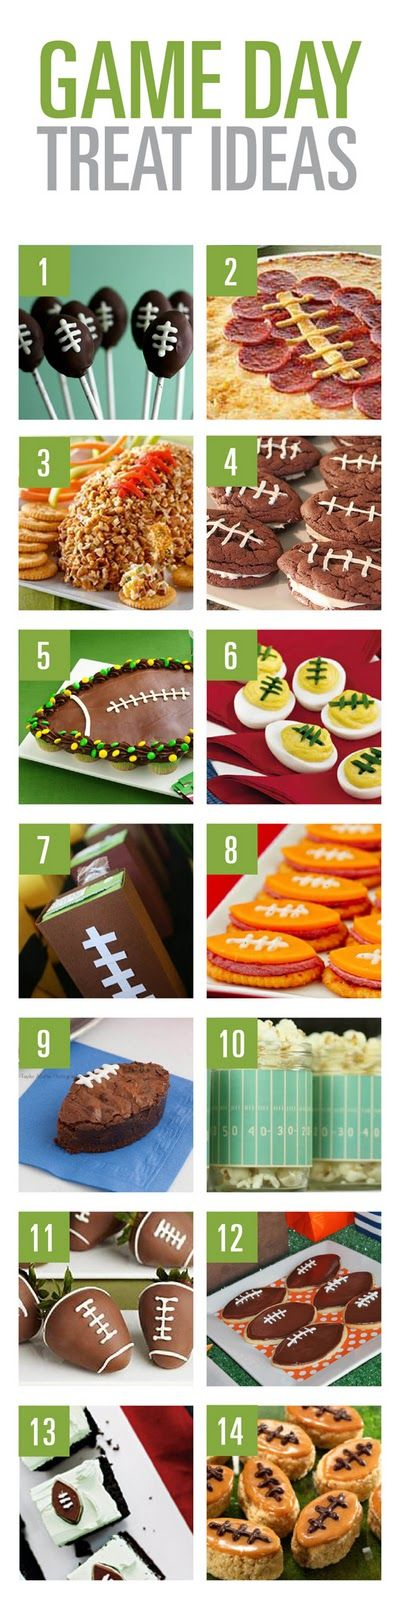 game day treat ideas